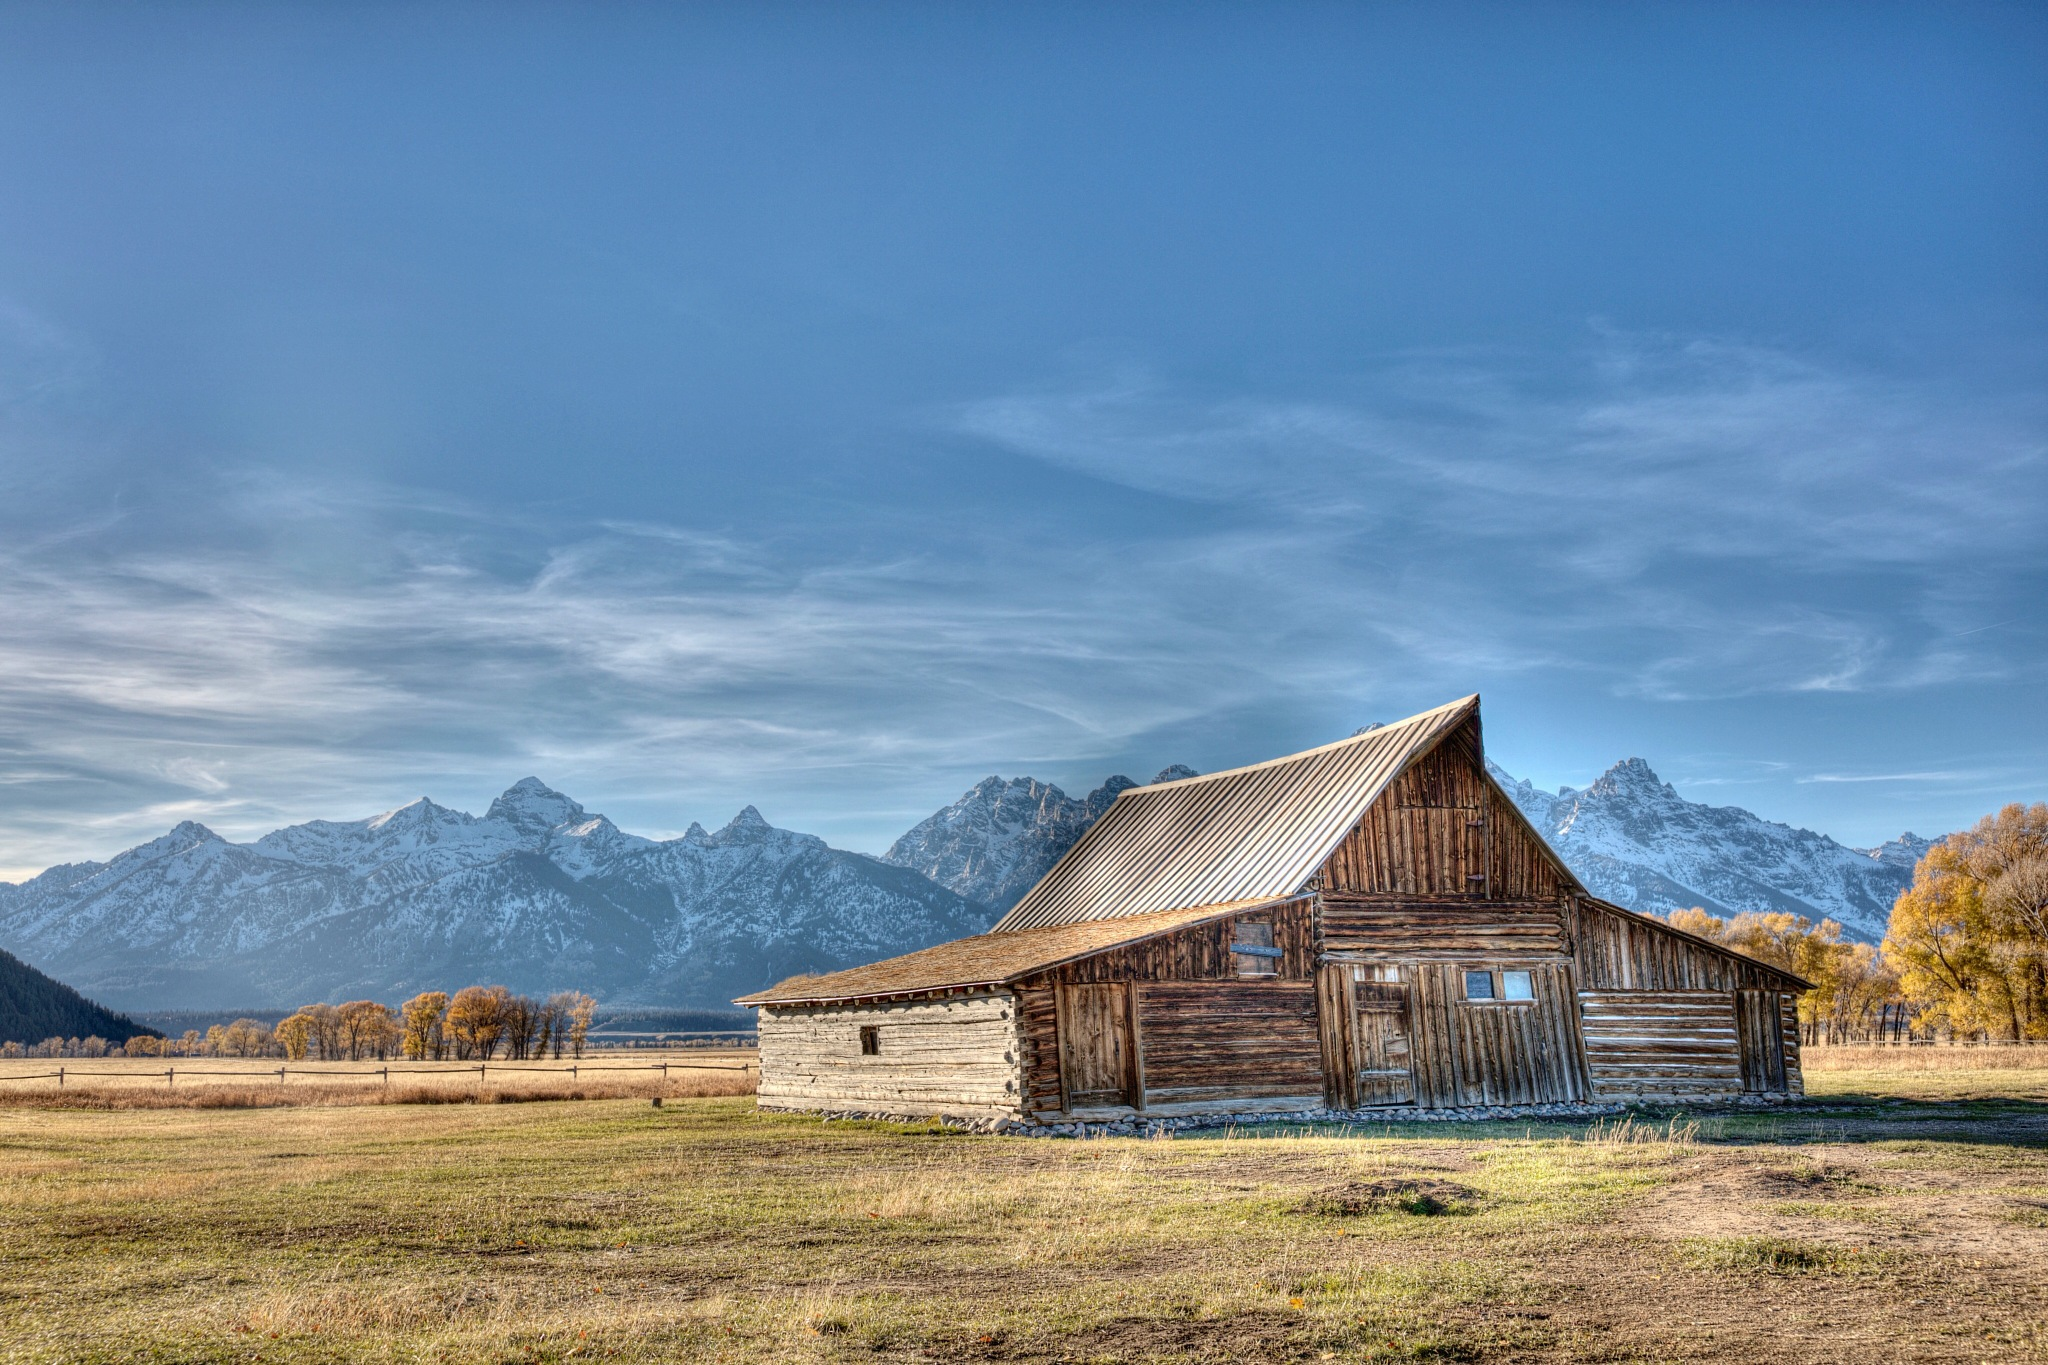 Moulton Barn Jackson Wyoming by kylewoodbury